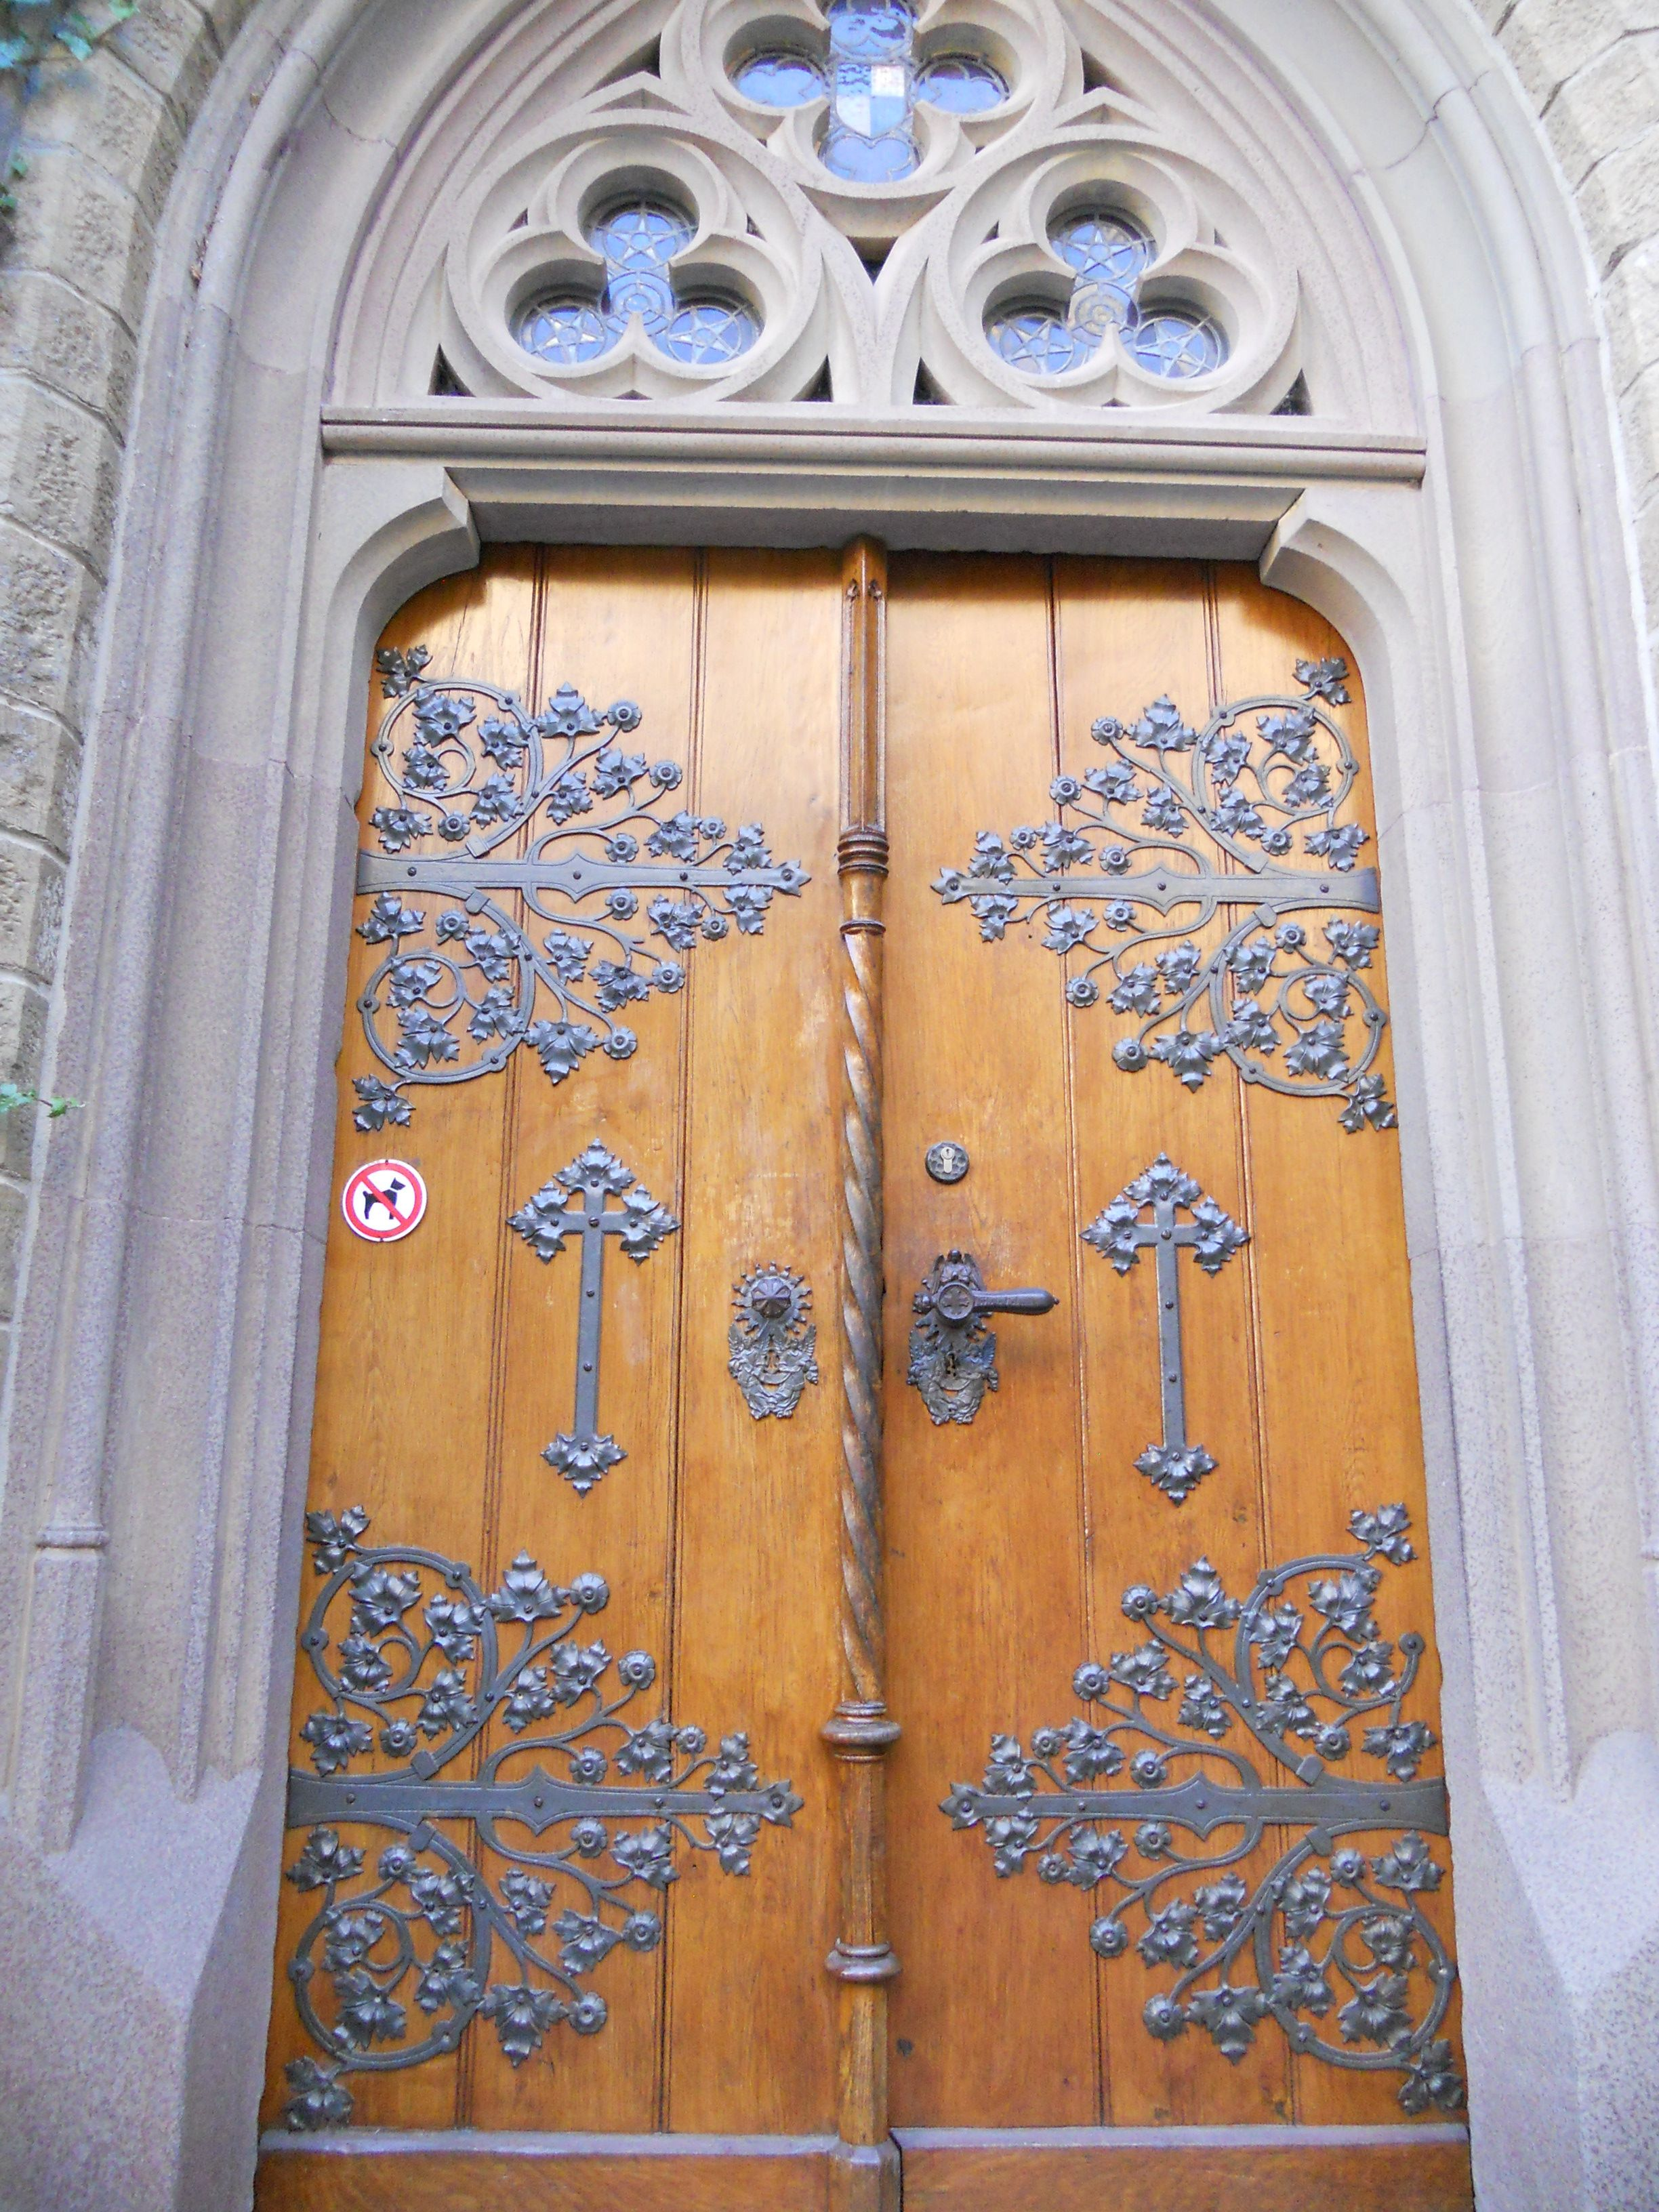 This is one of the Chapel doors at Castle Hohenzollern, Hechingen Germany.